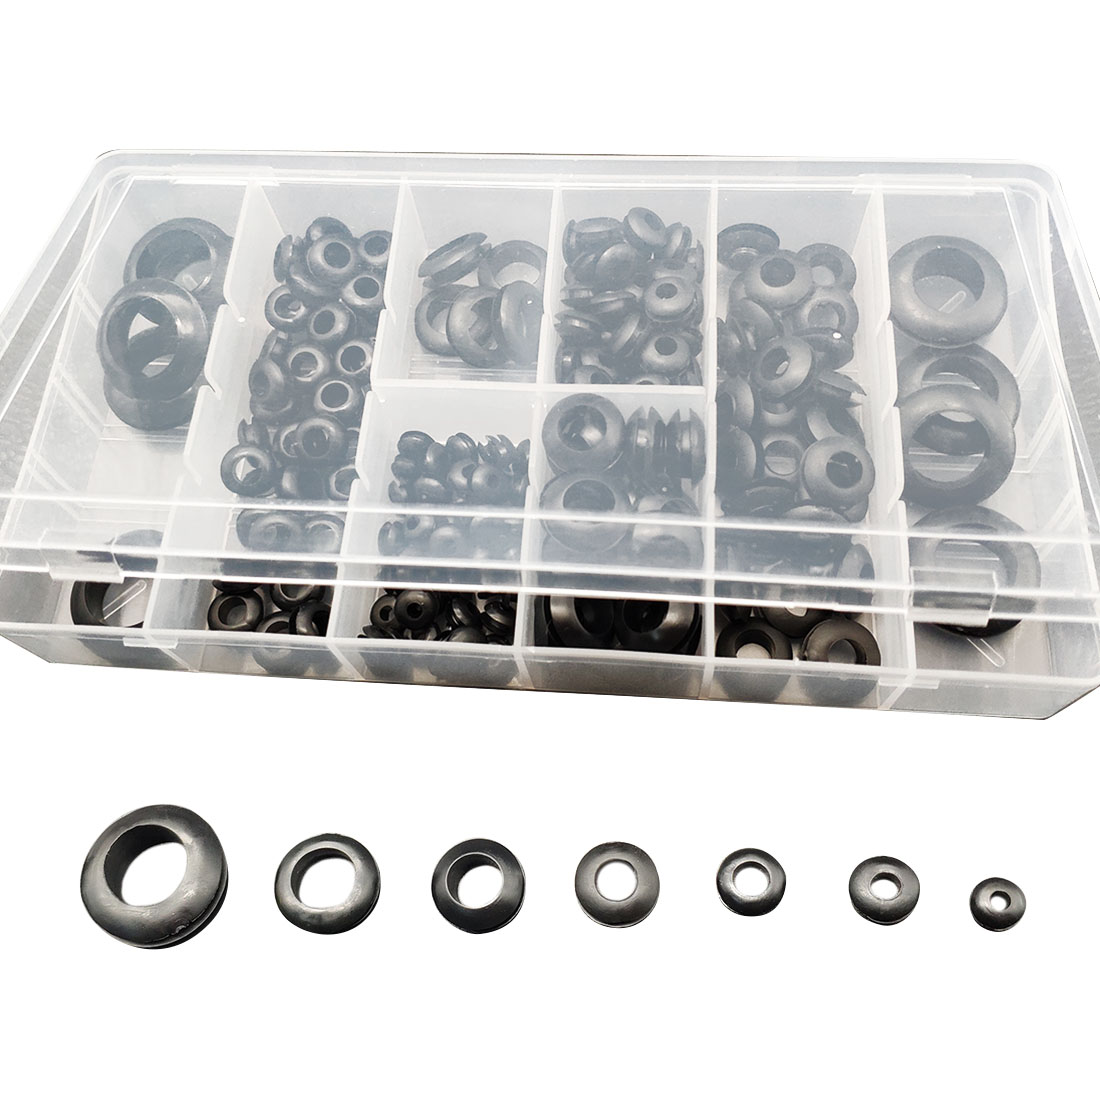 180Pcs/Box Rubber Grommet 8 Popular Sizes Grommet Gasket For Protects Wire Cable & Hose Custom Part Rubber Seal Assortment Set180Pcs/Box Rubber Grommet 8 Popular Sizes Grommet Gasket For Protects Wire Cable & Hose Custom Part Rubber Seal Assortment Set